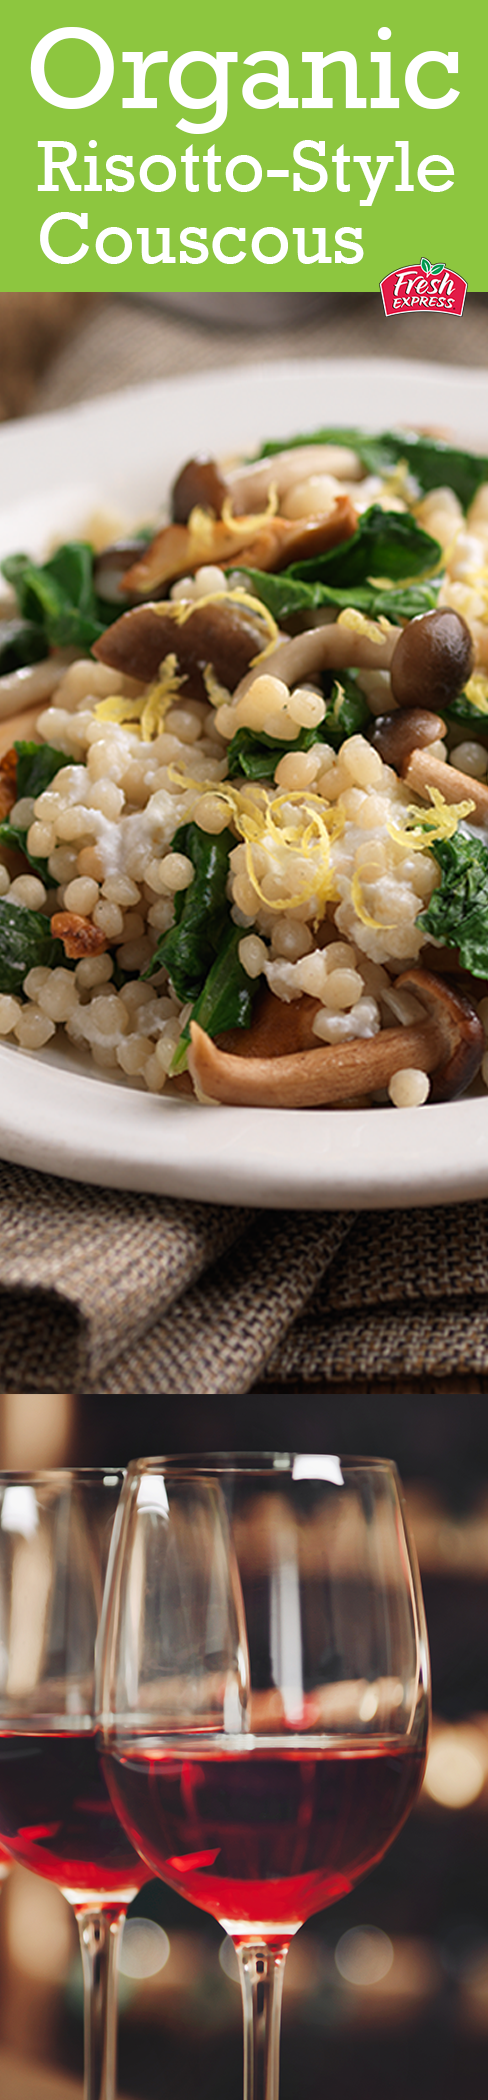 Mushrooms & wilted kale of this Organic Risotto-Style Couscous recipe bring out the earthy flavors of Pinot Noir making this a perfect salad & wine pairing.